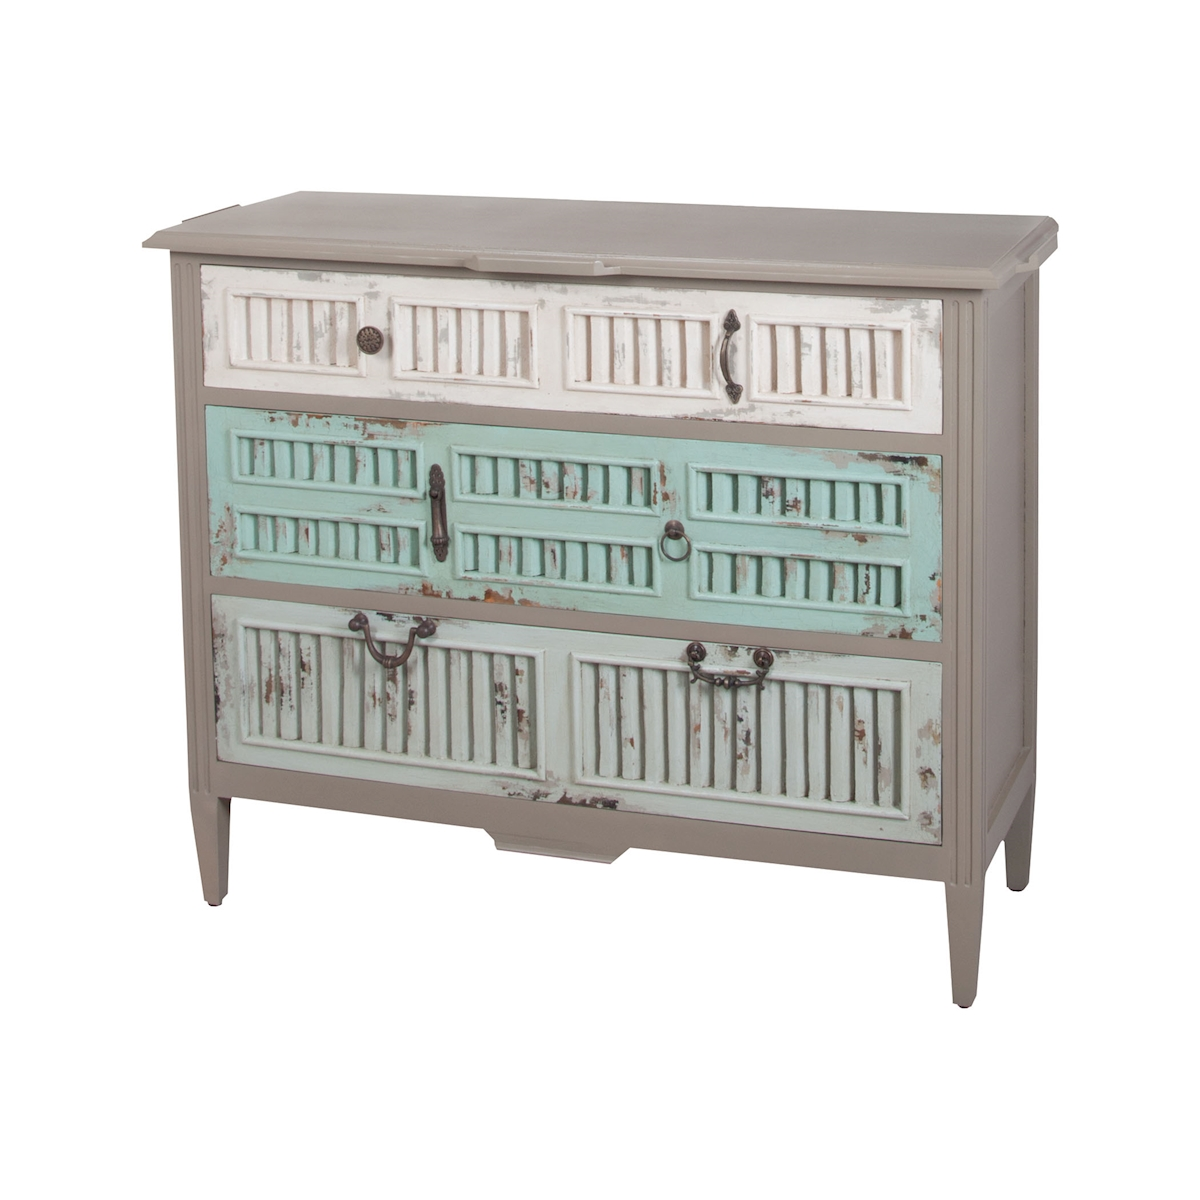 Waterfront 3-Drawer Shuttered Chest in Grain De Bois Taupe | Elk Home